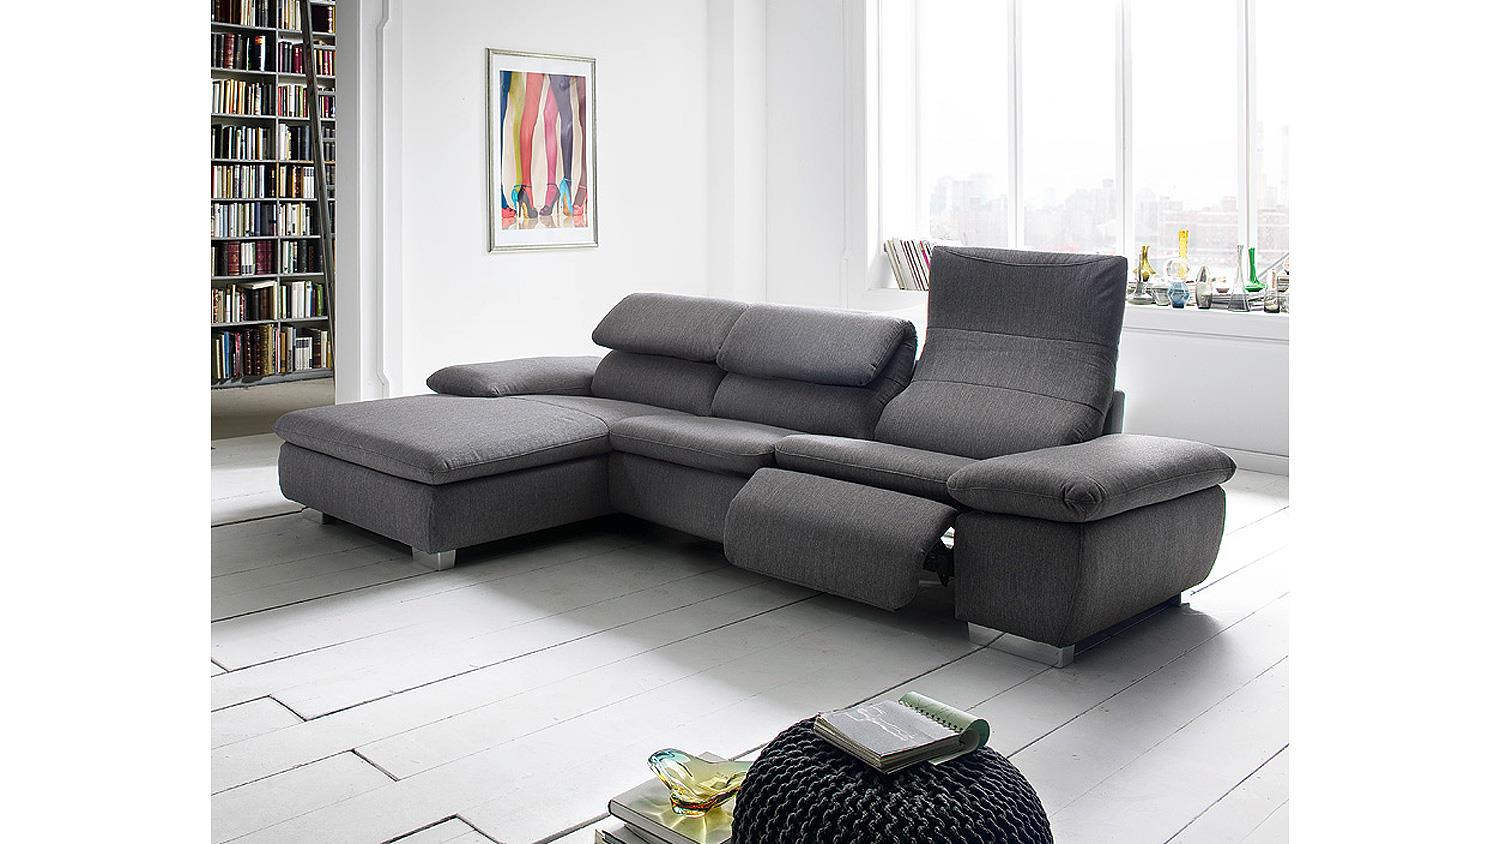 Sofa garnitur mit relaxfunktion die neueste innovation for Sofa garnitur